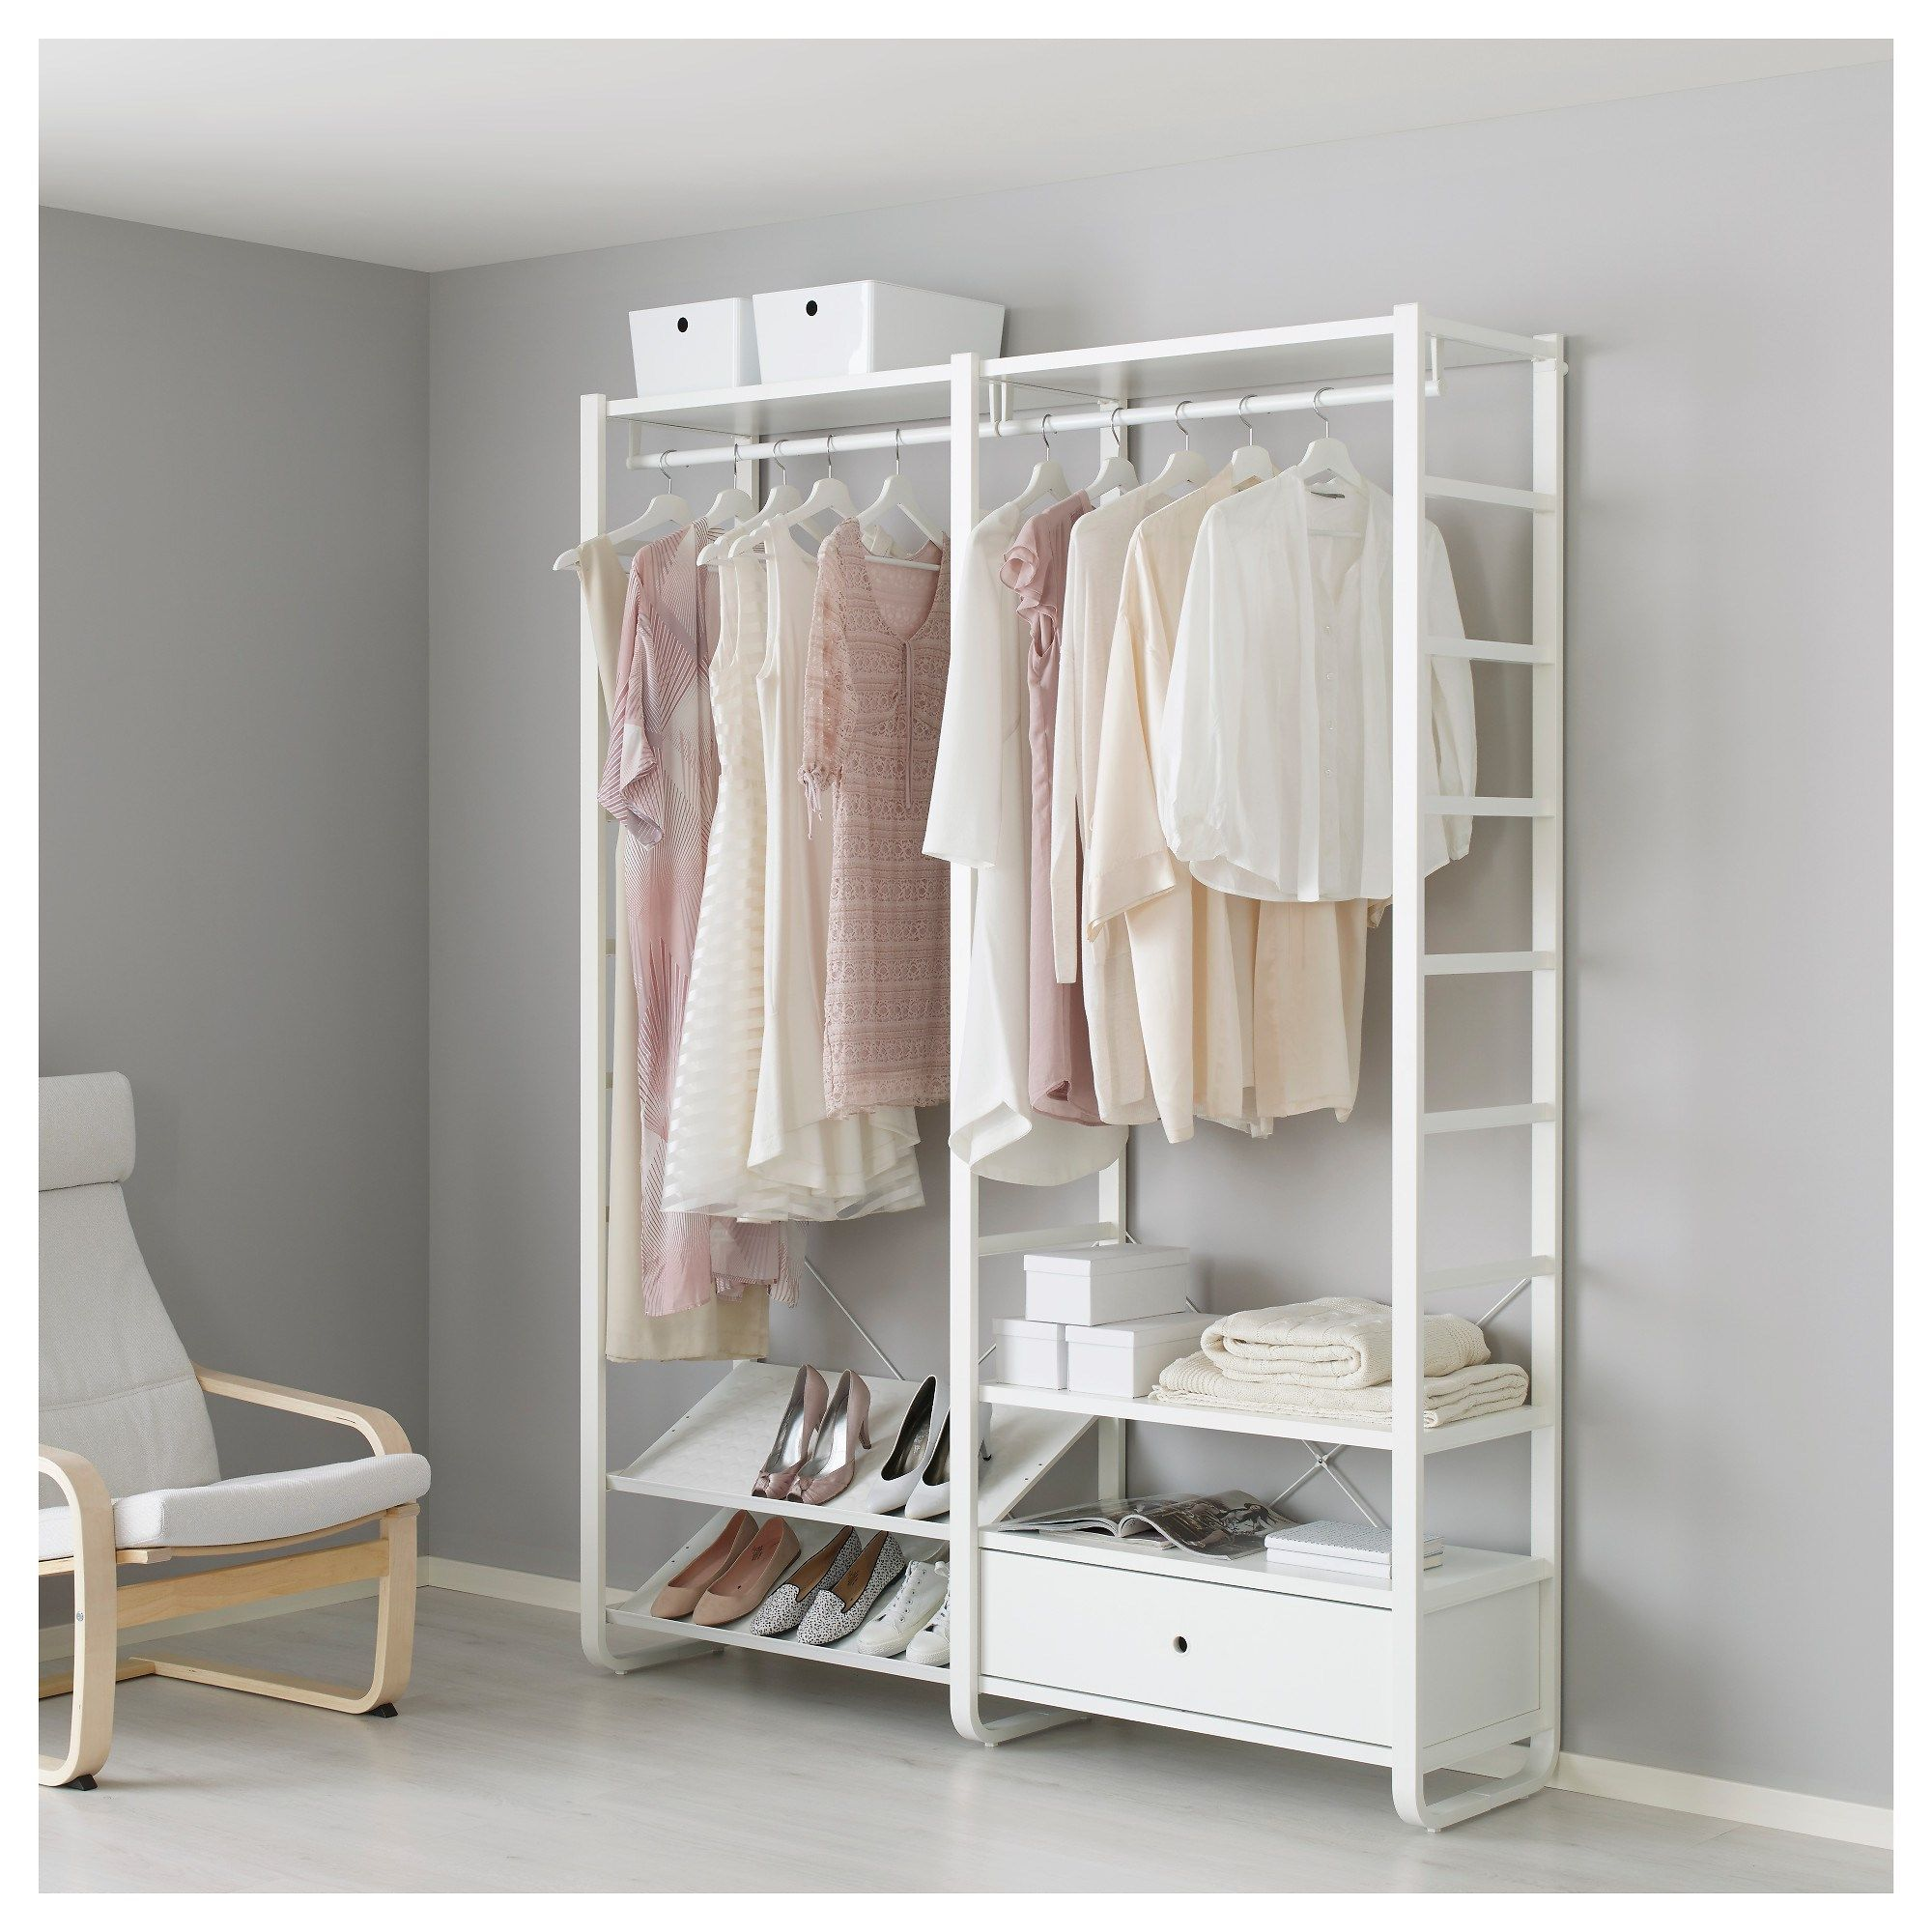 elvarli open storage unit white 165x40x216 cm ikea